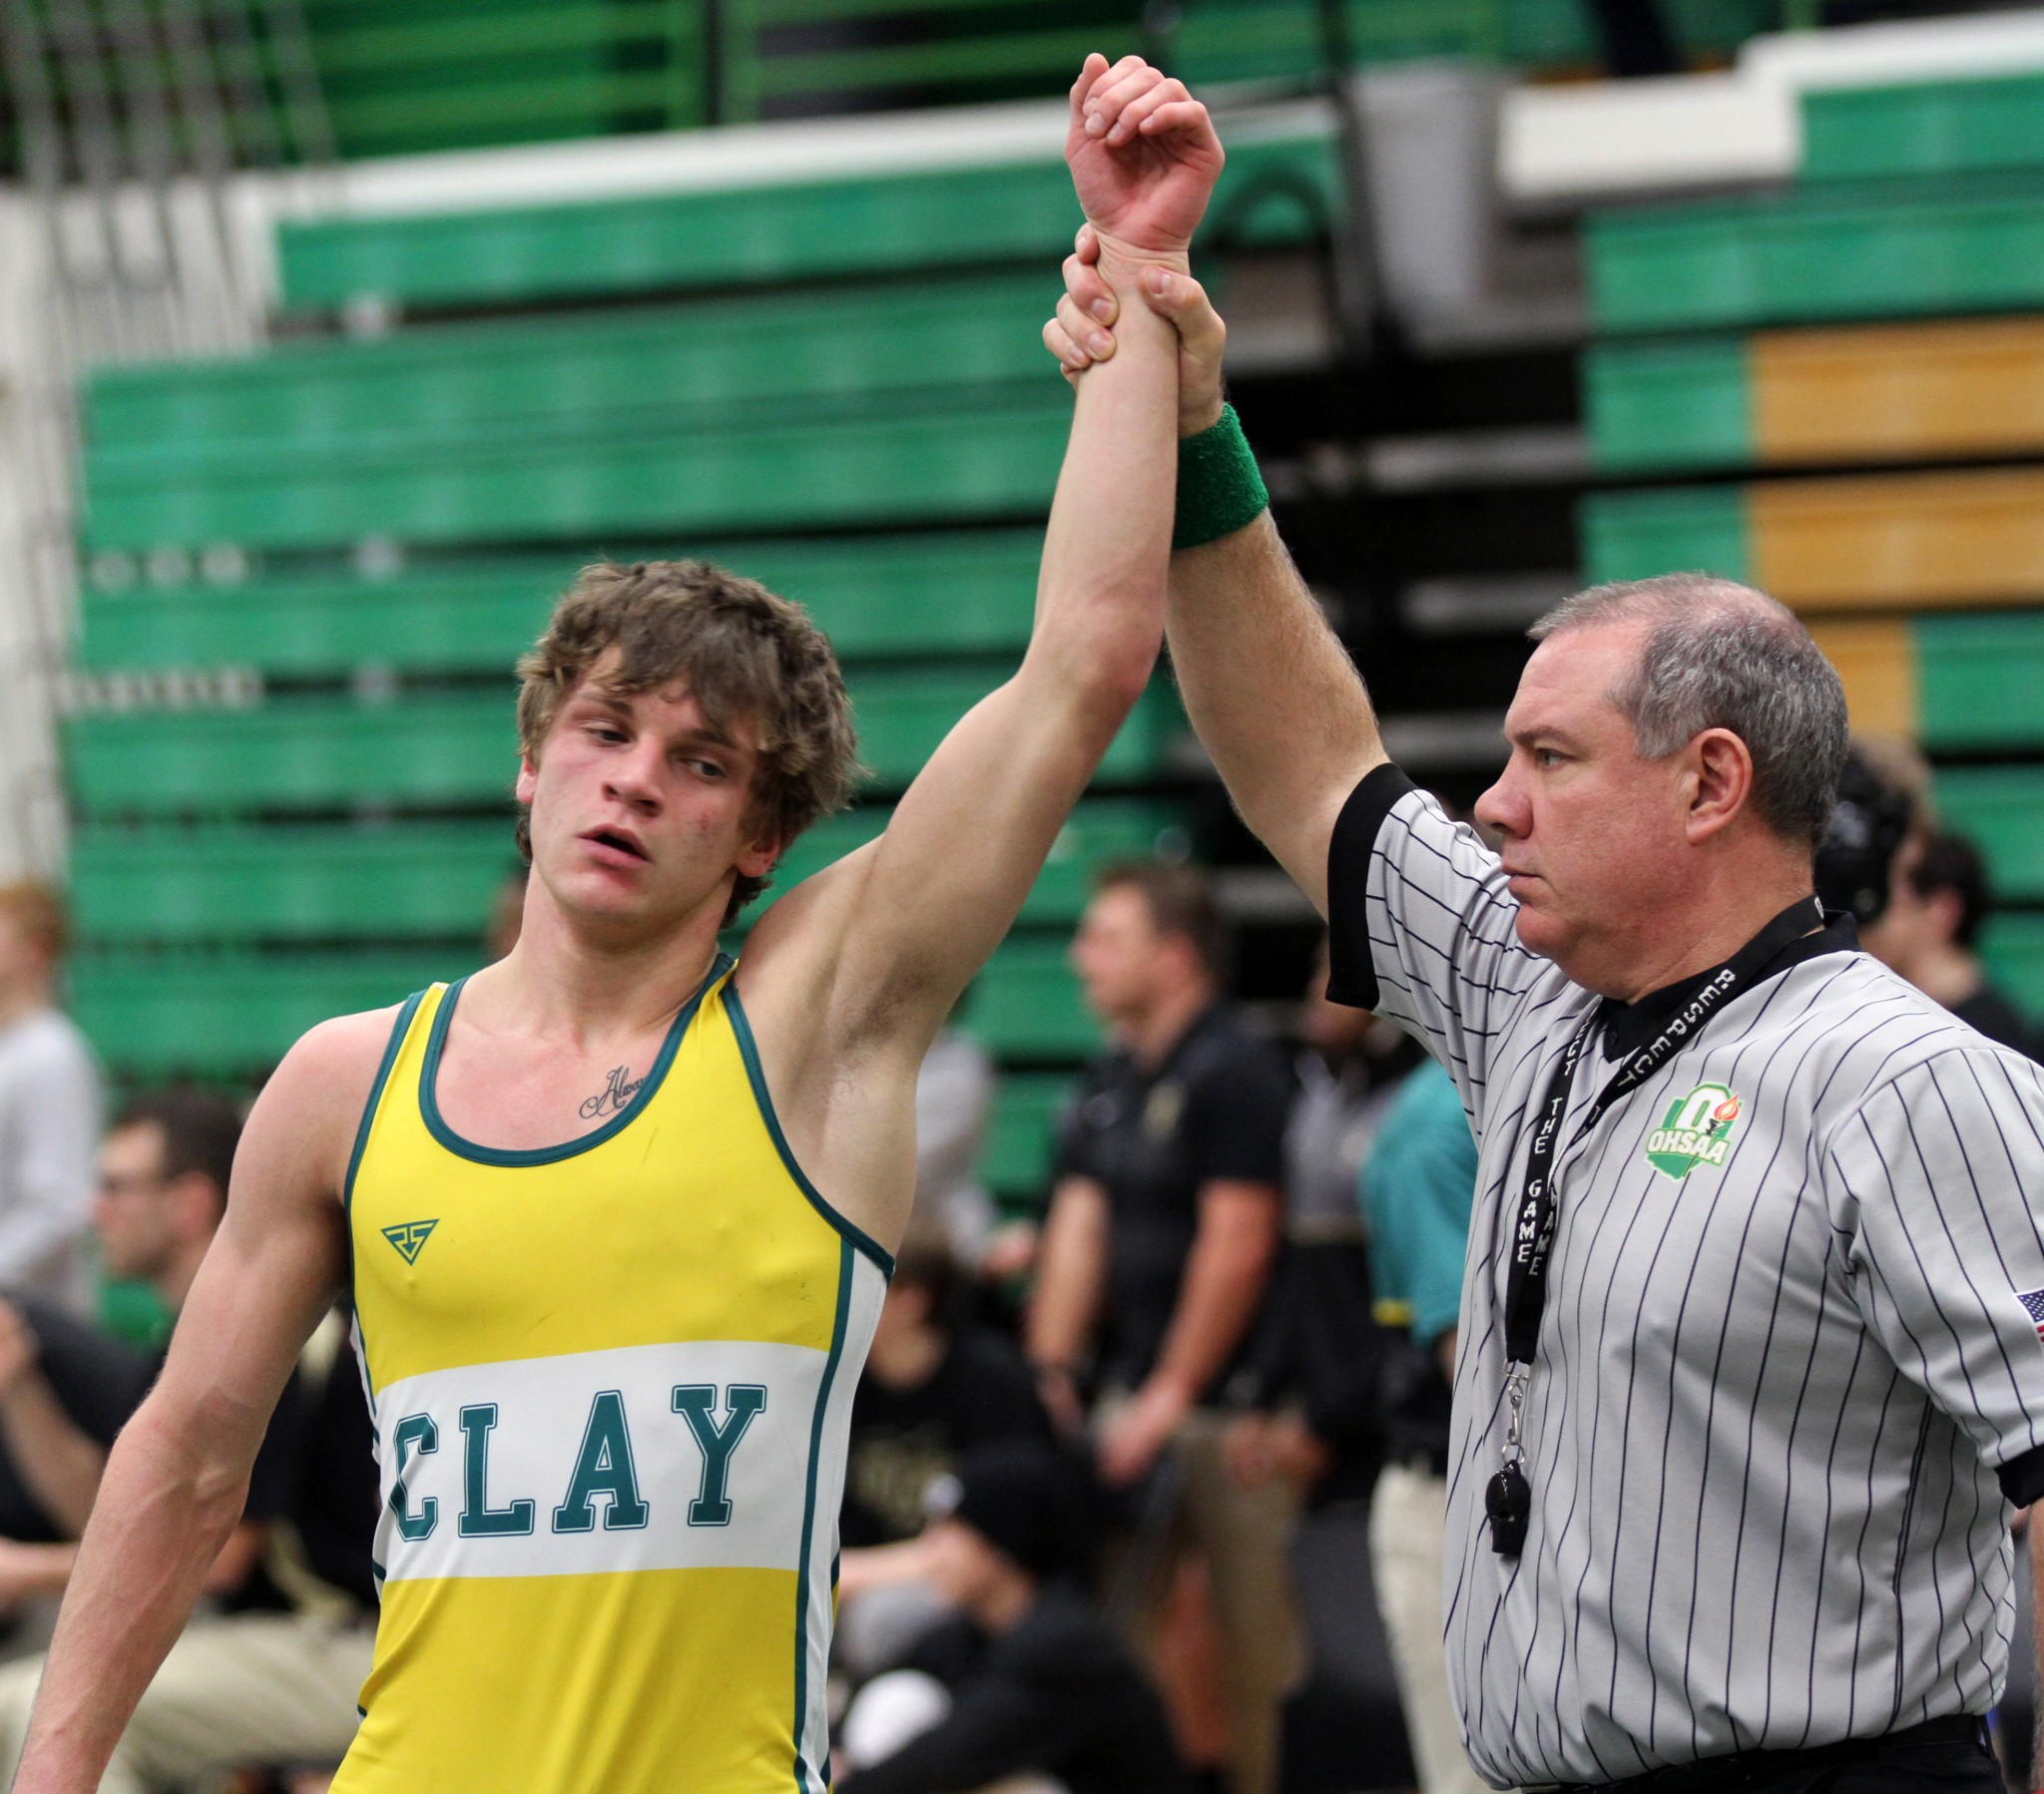 Clay wrestler Mike Daly. (File photo by Rich Wagner)